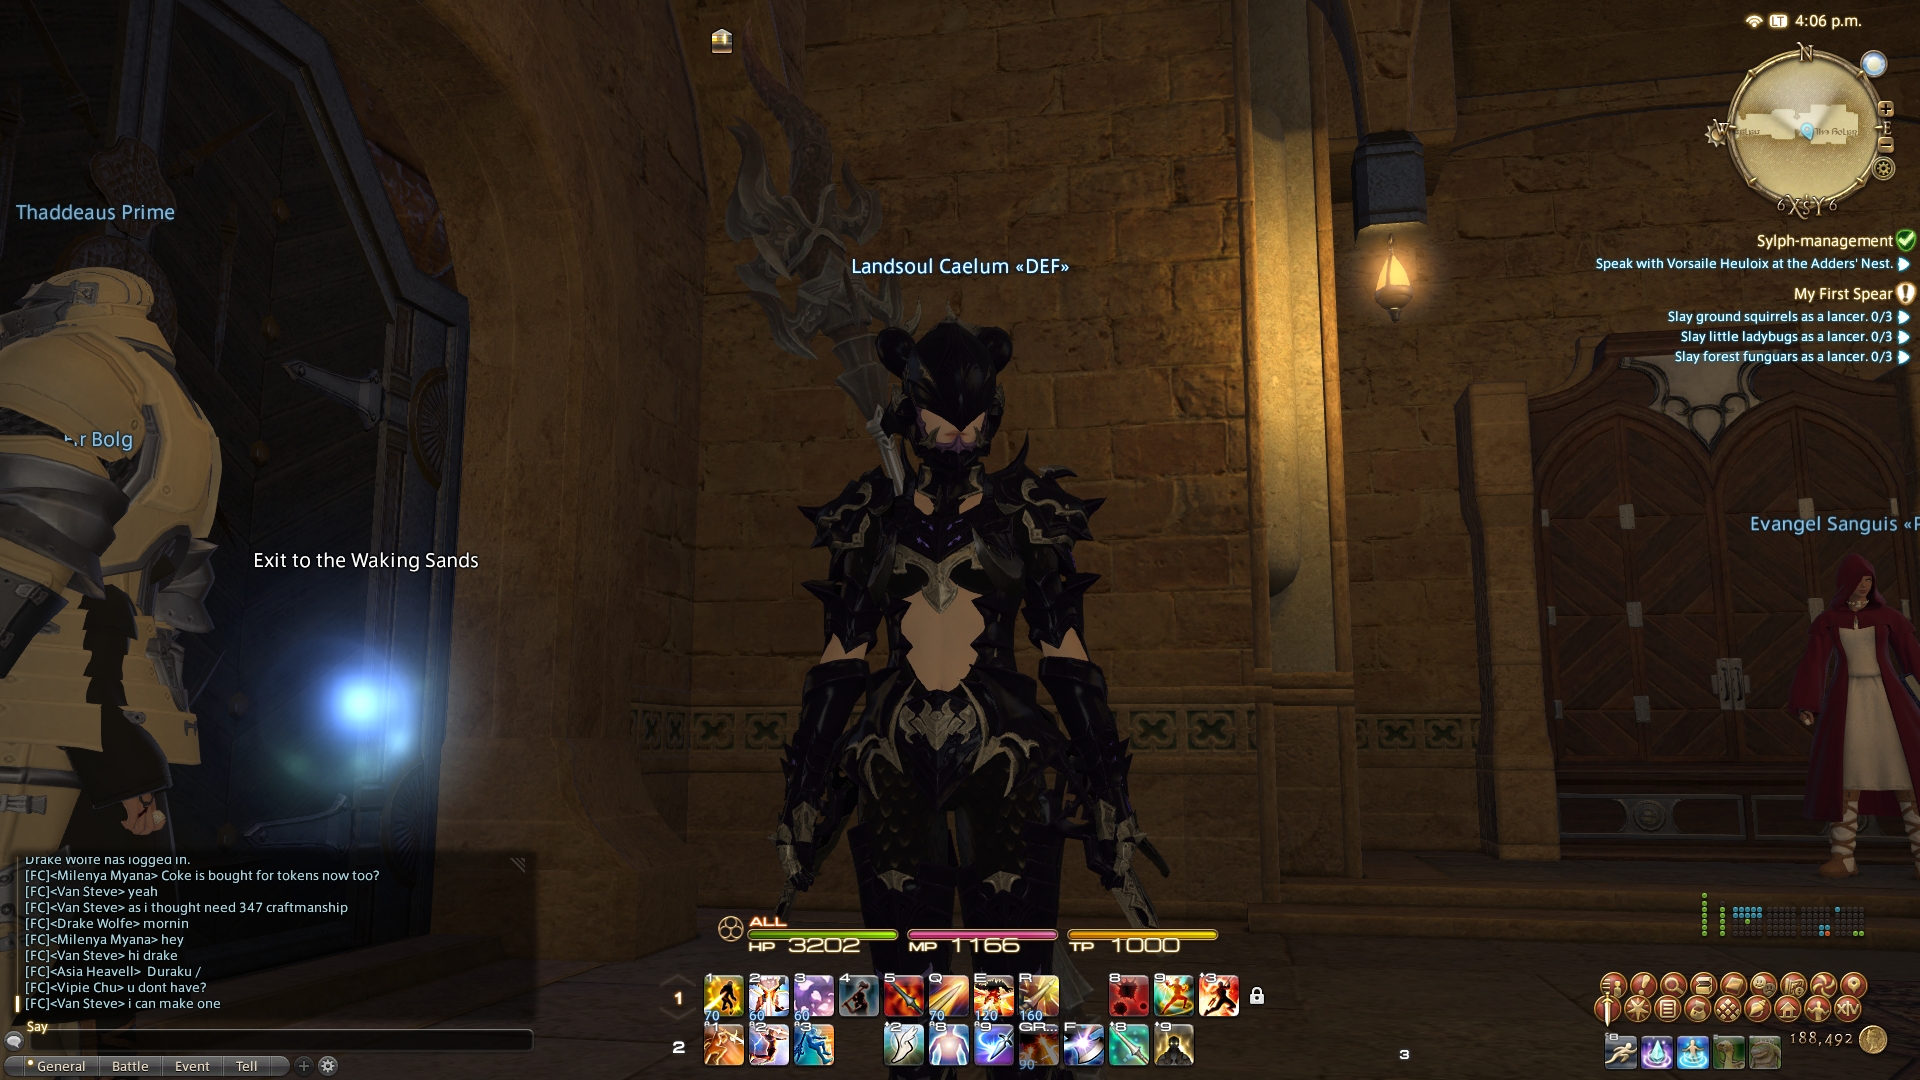 landsoul ffxiv make petbar command toggle your visibility pictures remember anyone post know